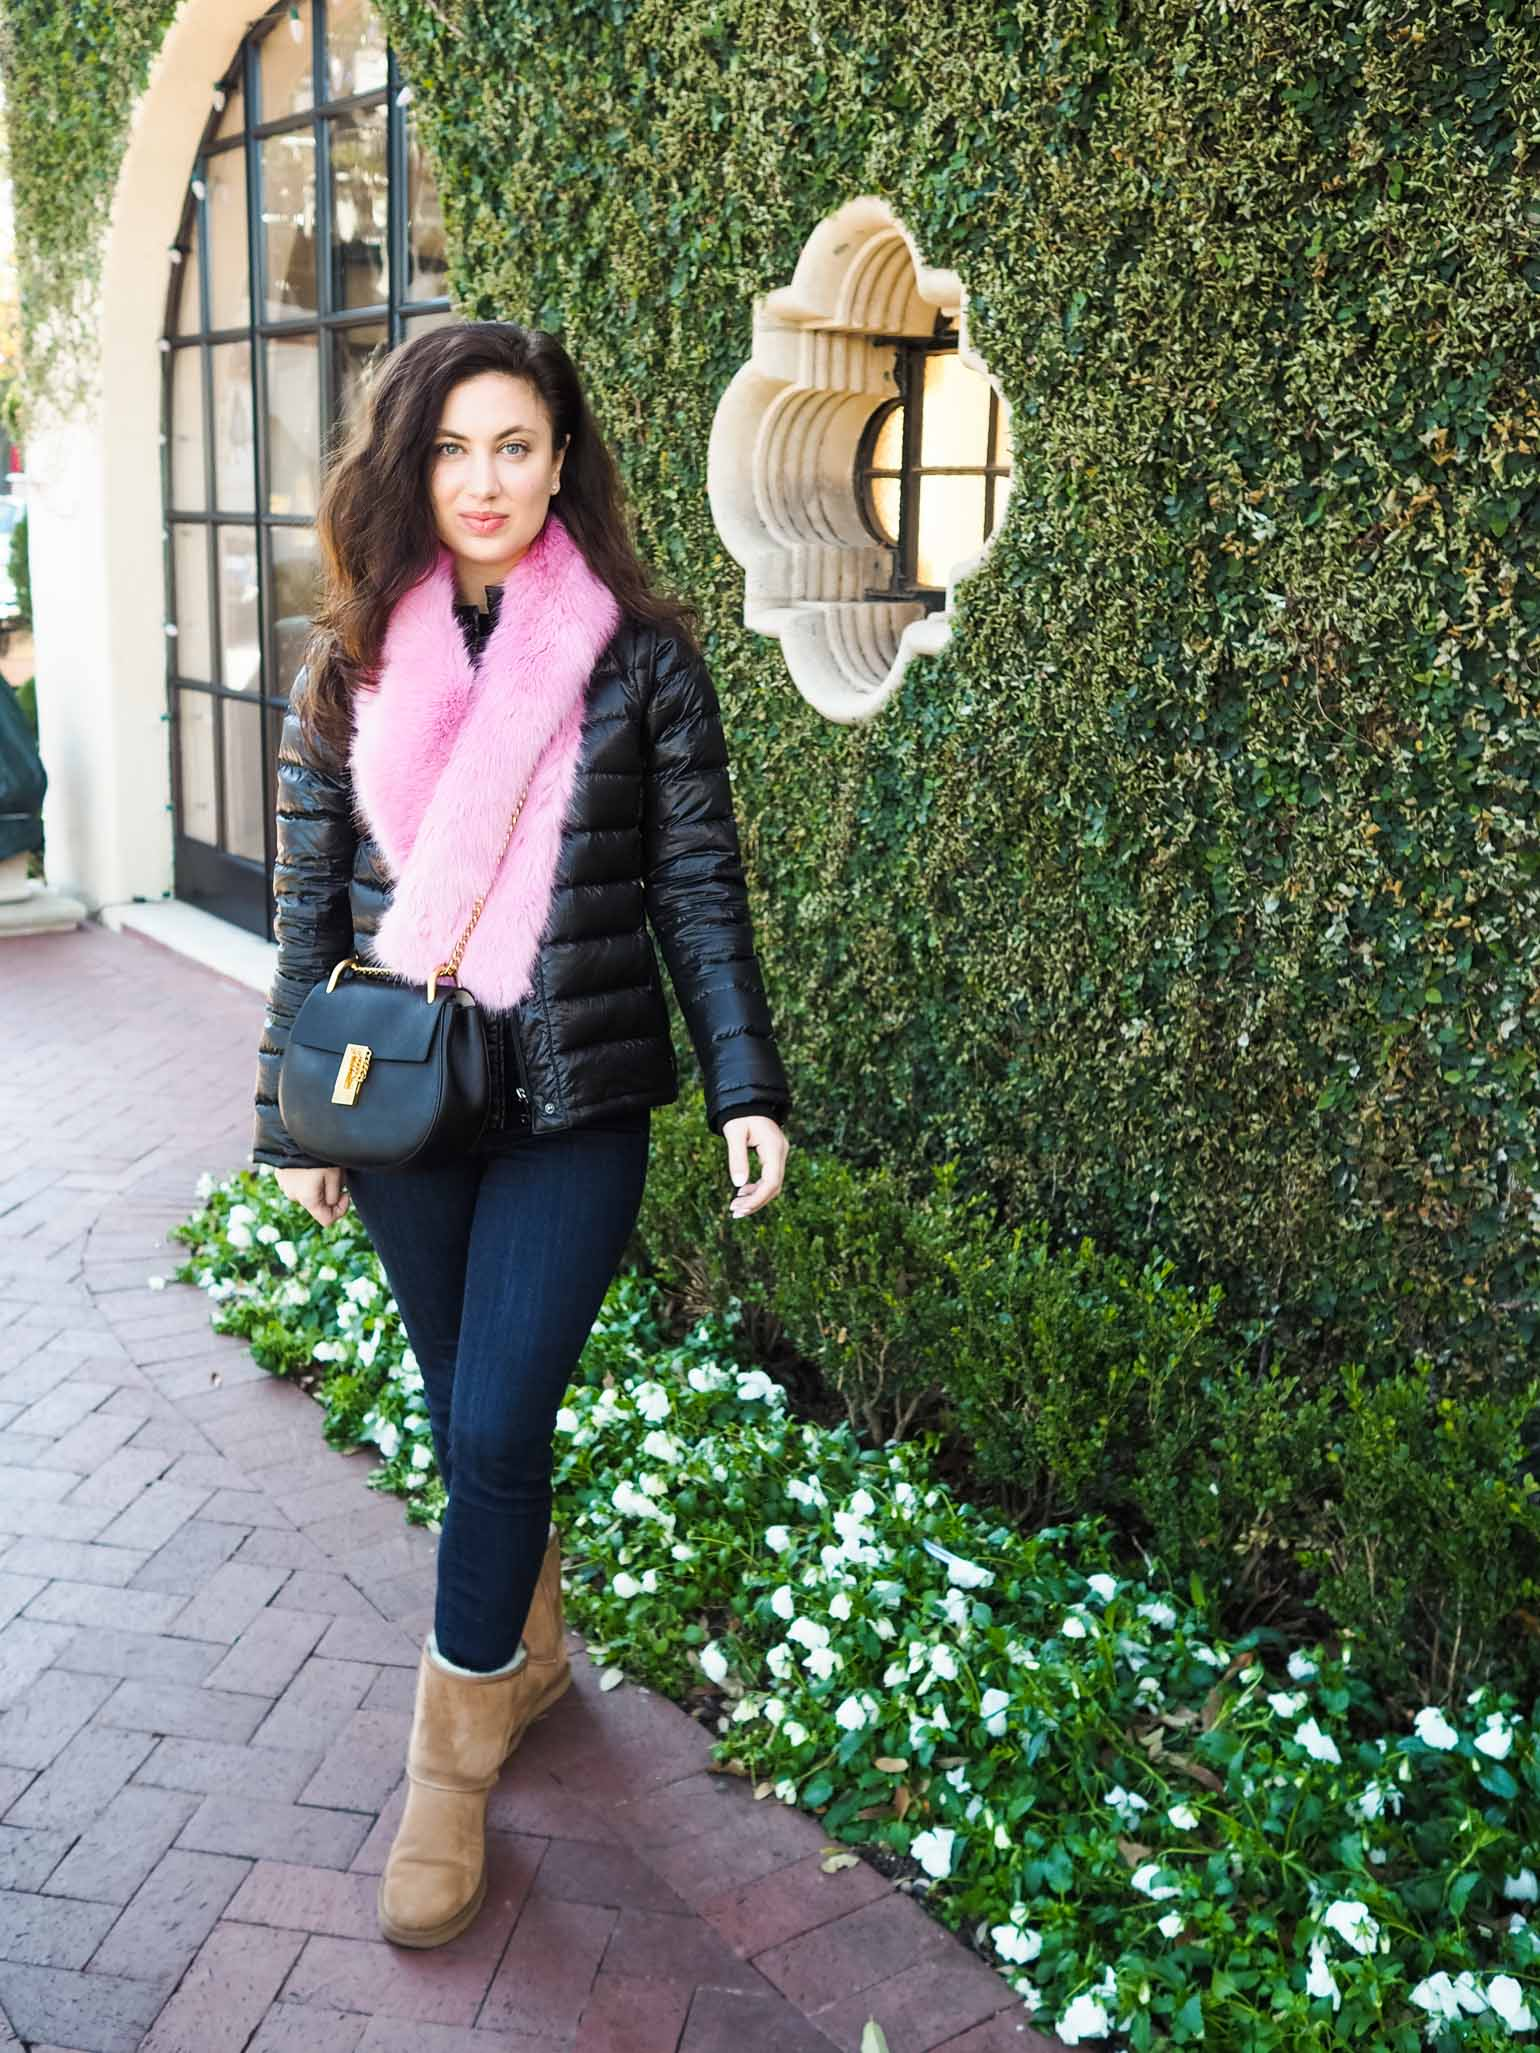 Cristina from The Brunette Nomad, Dallas fashion blogger, reveals her new Chloe Drew Handbag in a winter faux fur look